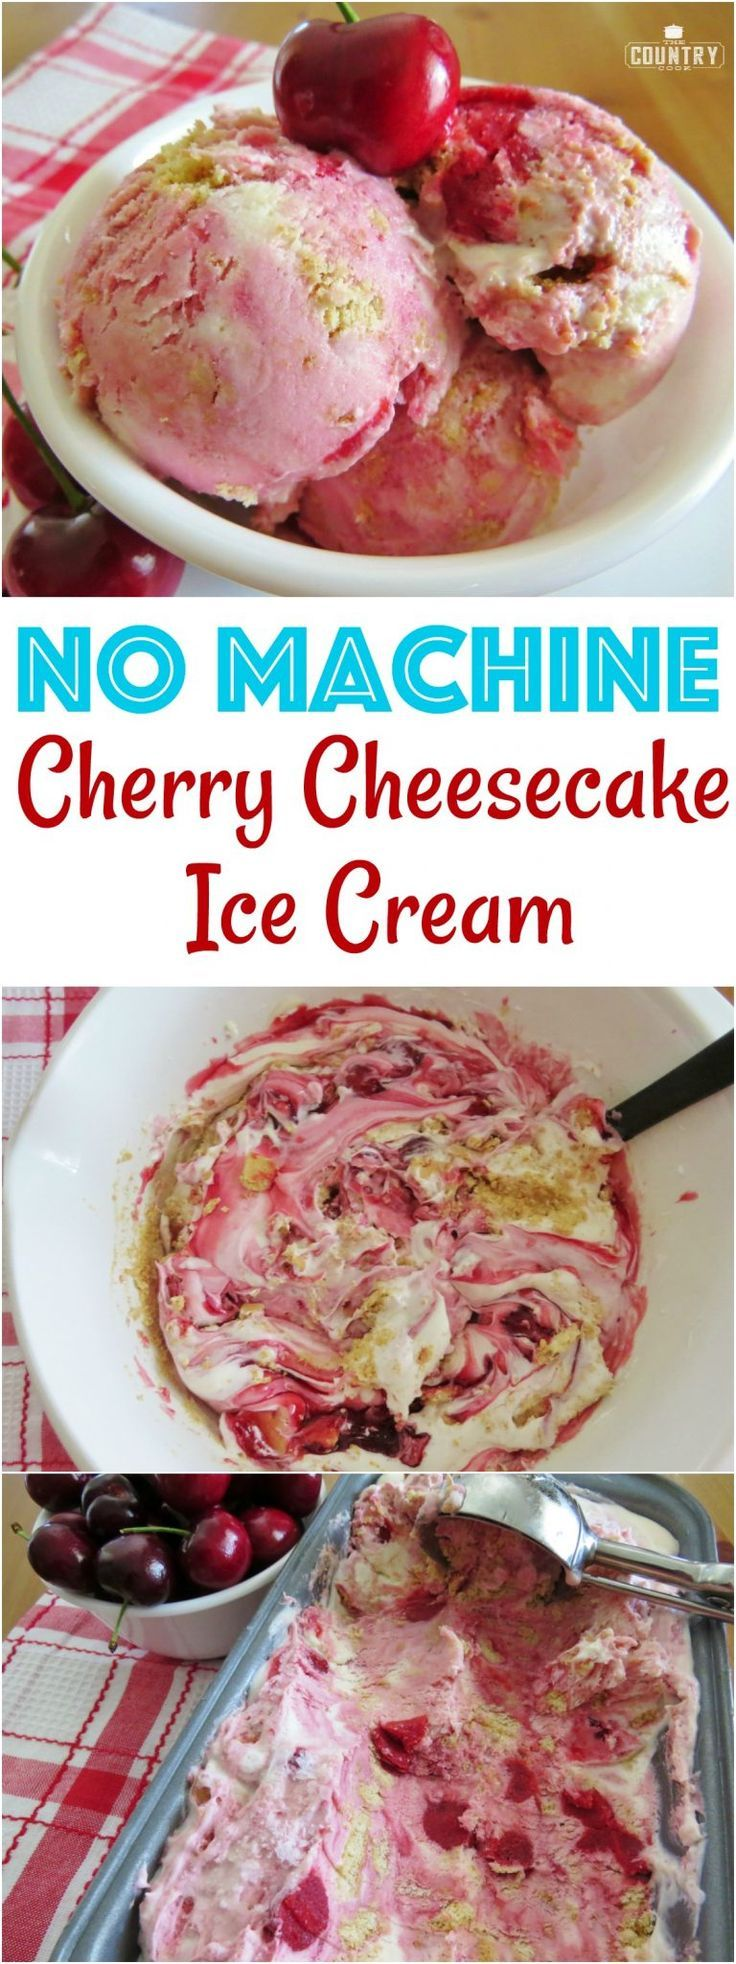 No Machine Necessary Cherry Cheesecake Ice Cream recipe from The Country Cook